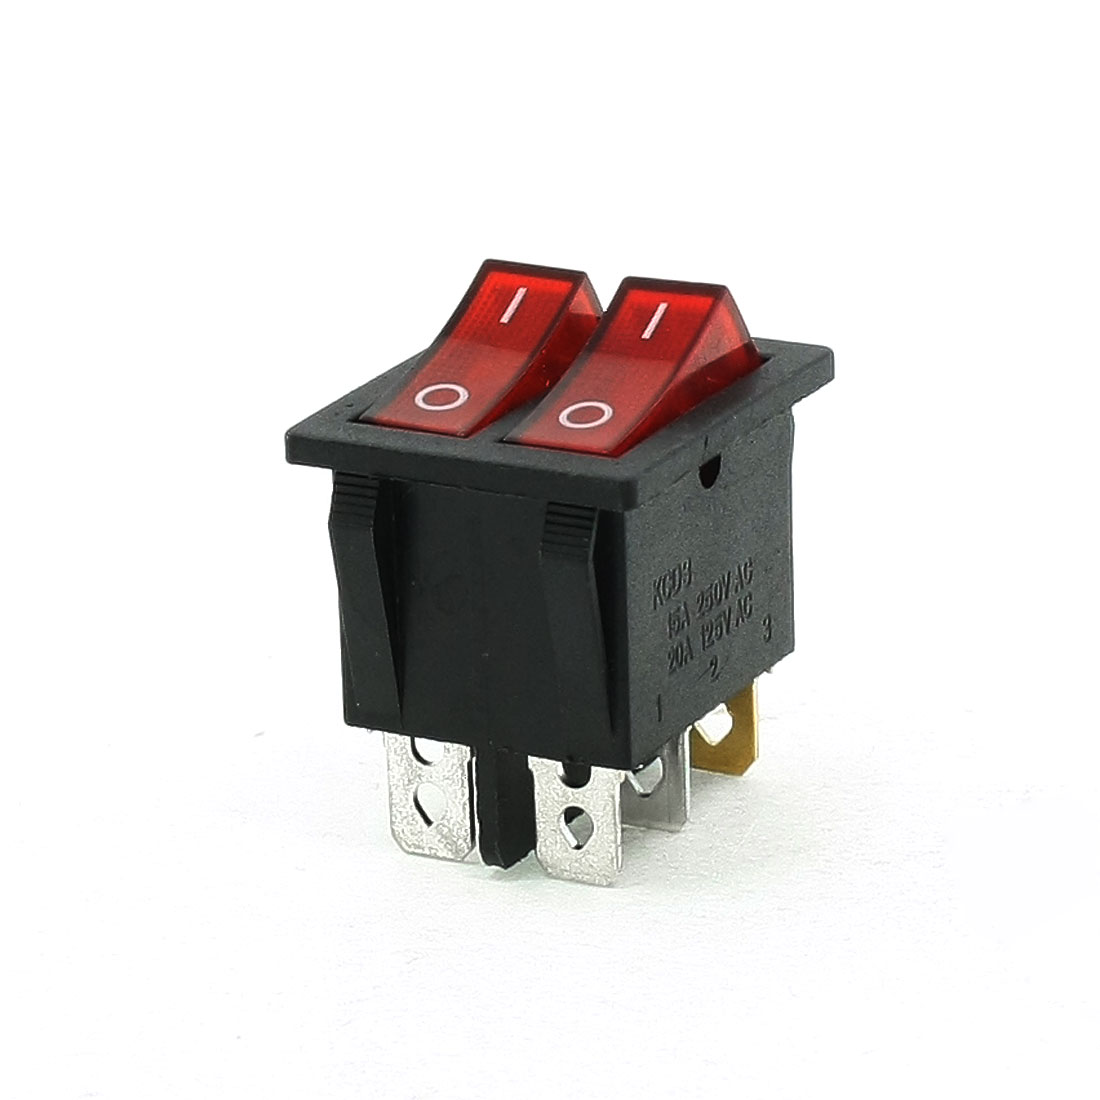 AC 250V/15A 125V/20A 6 Pin SPST On/Off Neon Light Rocker Switch